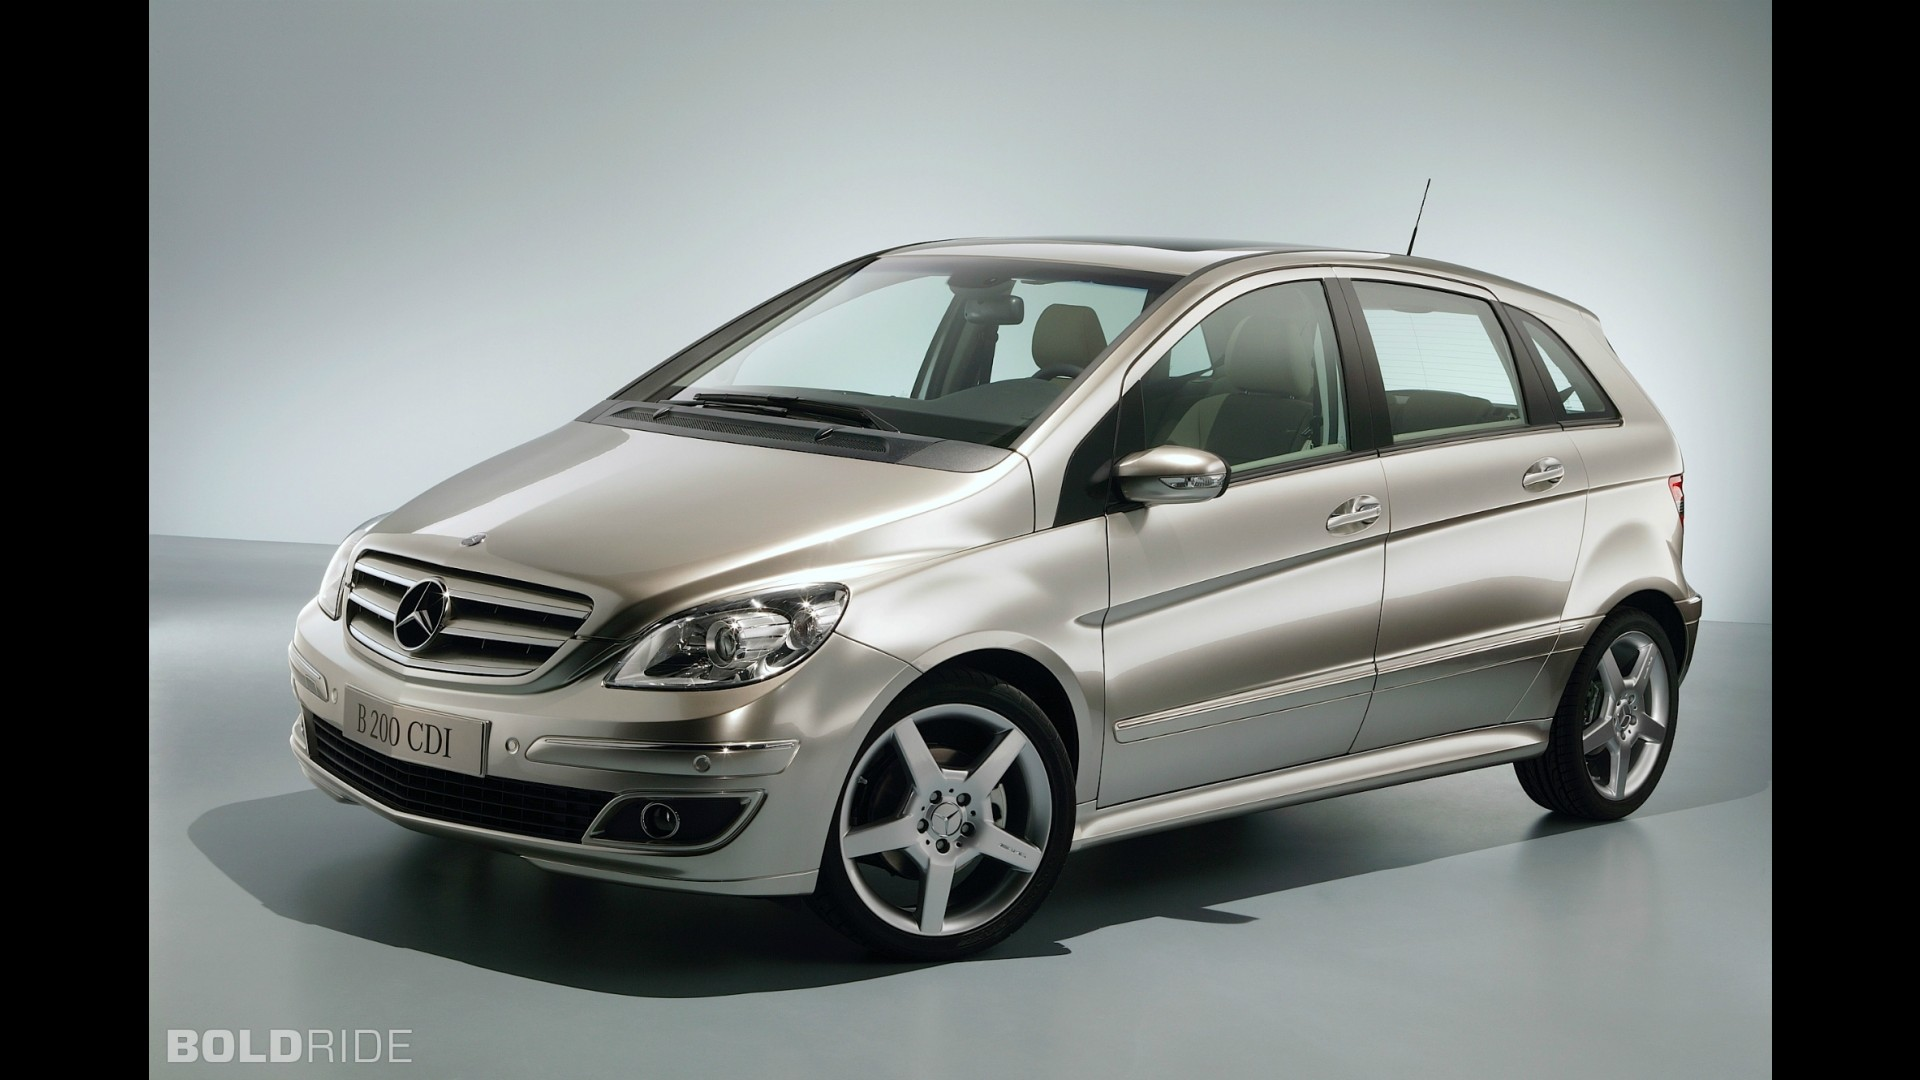 Mercedes-benz cdi photo - 1